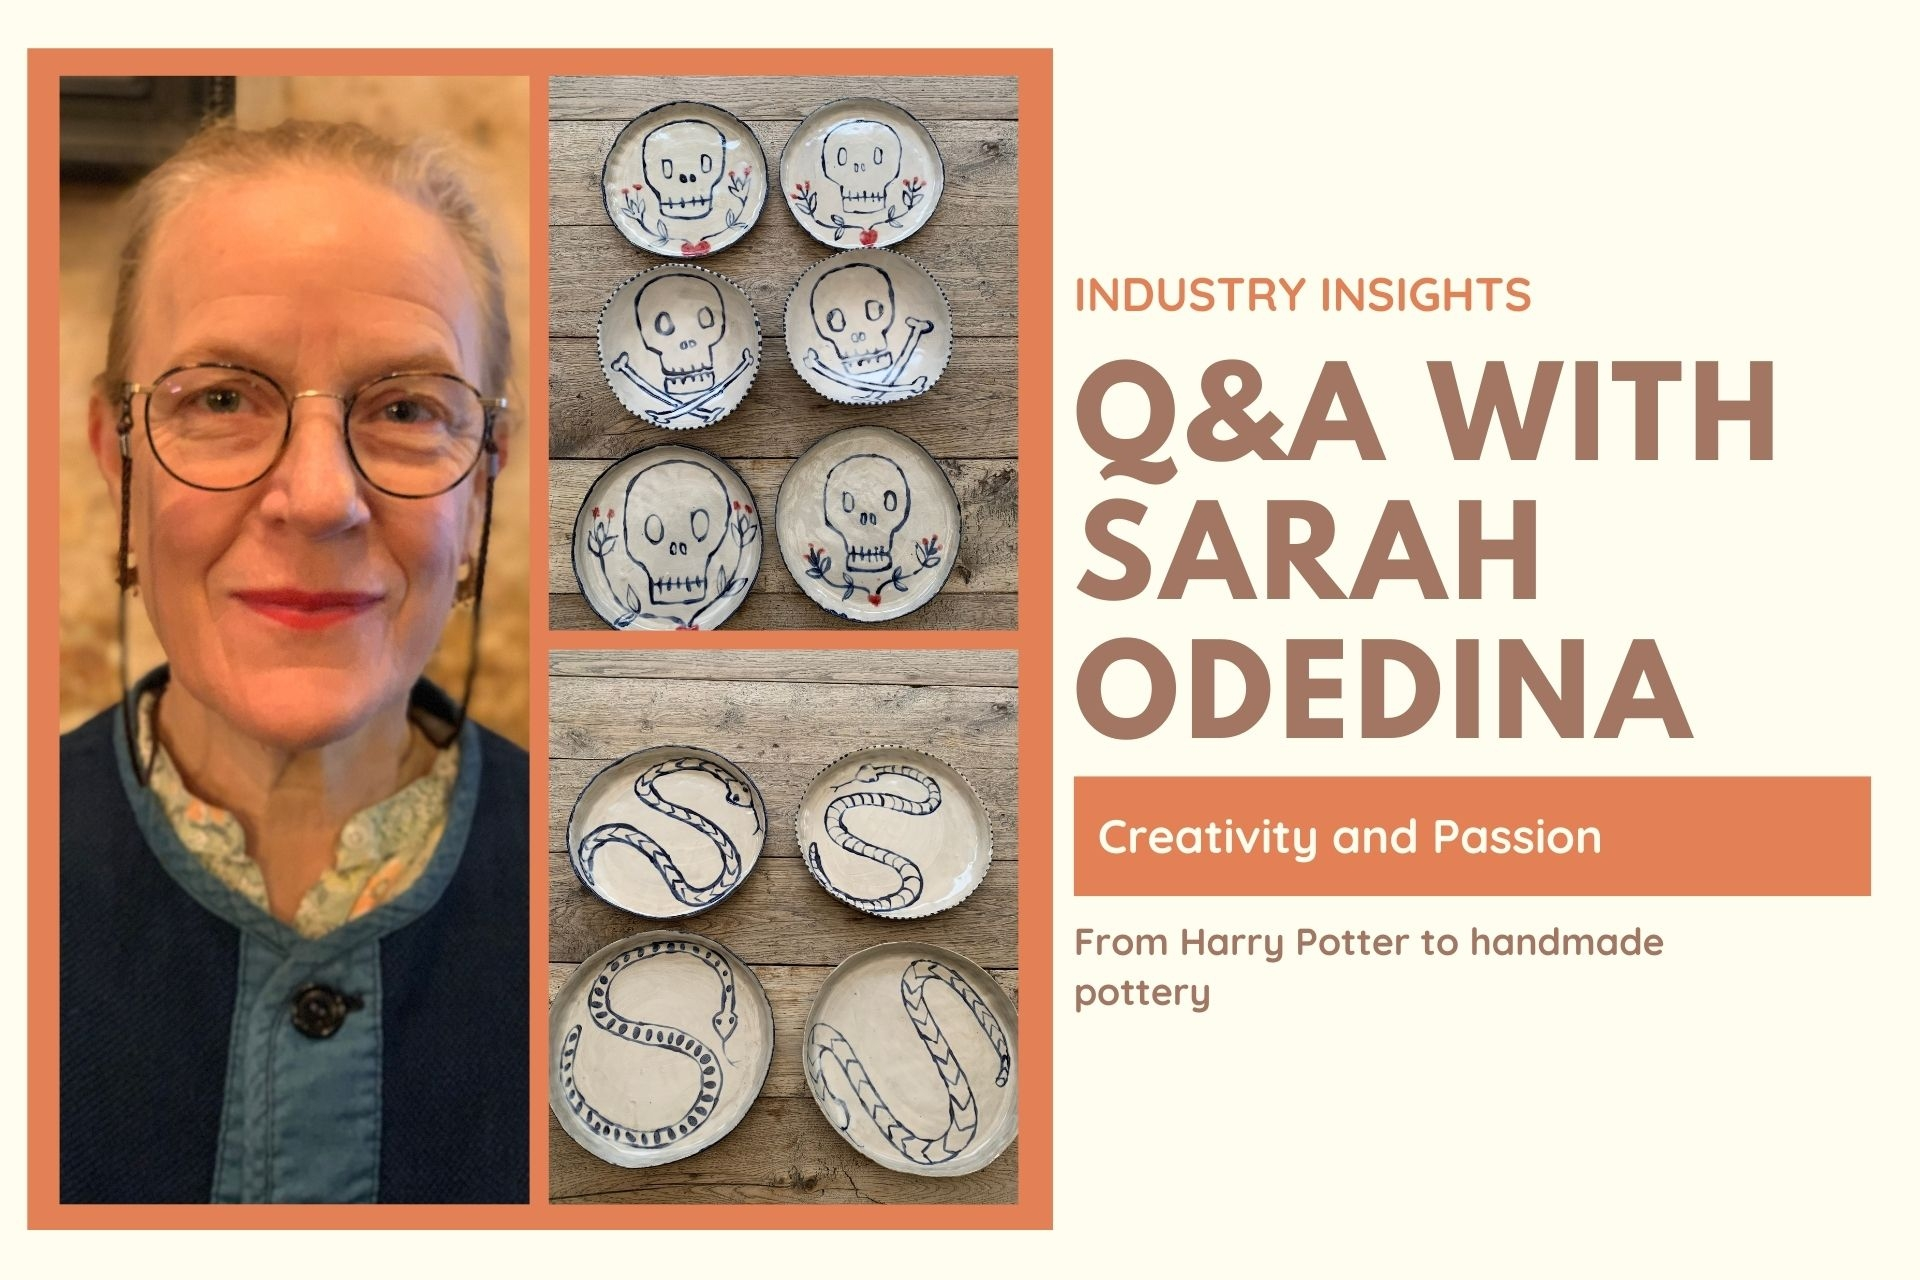 Industry Insights: Q&A with Sarah Odedina (creativity and passion, from Harry Potter to handmade pottery)